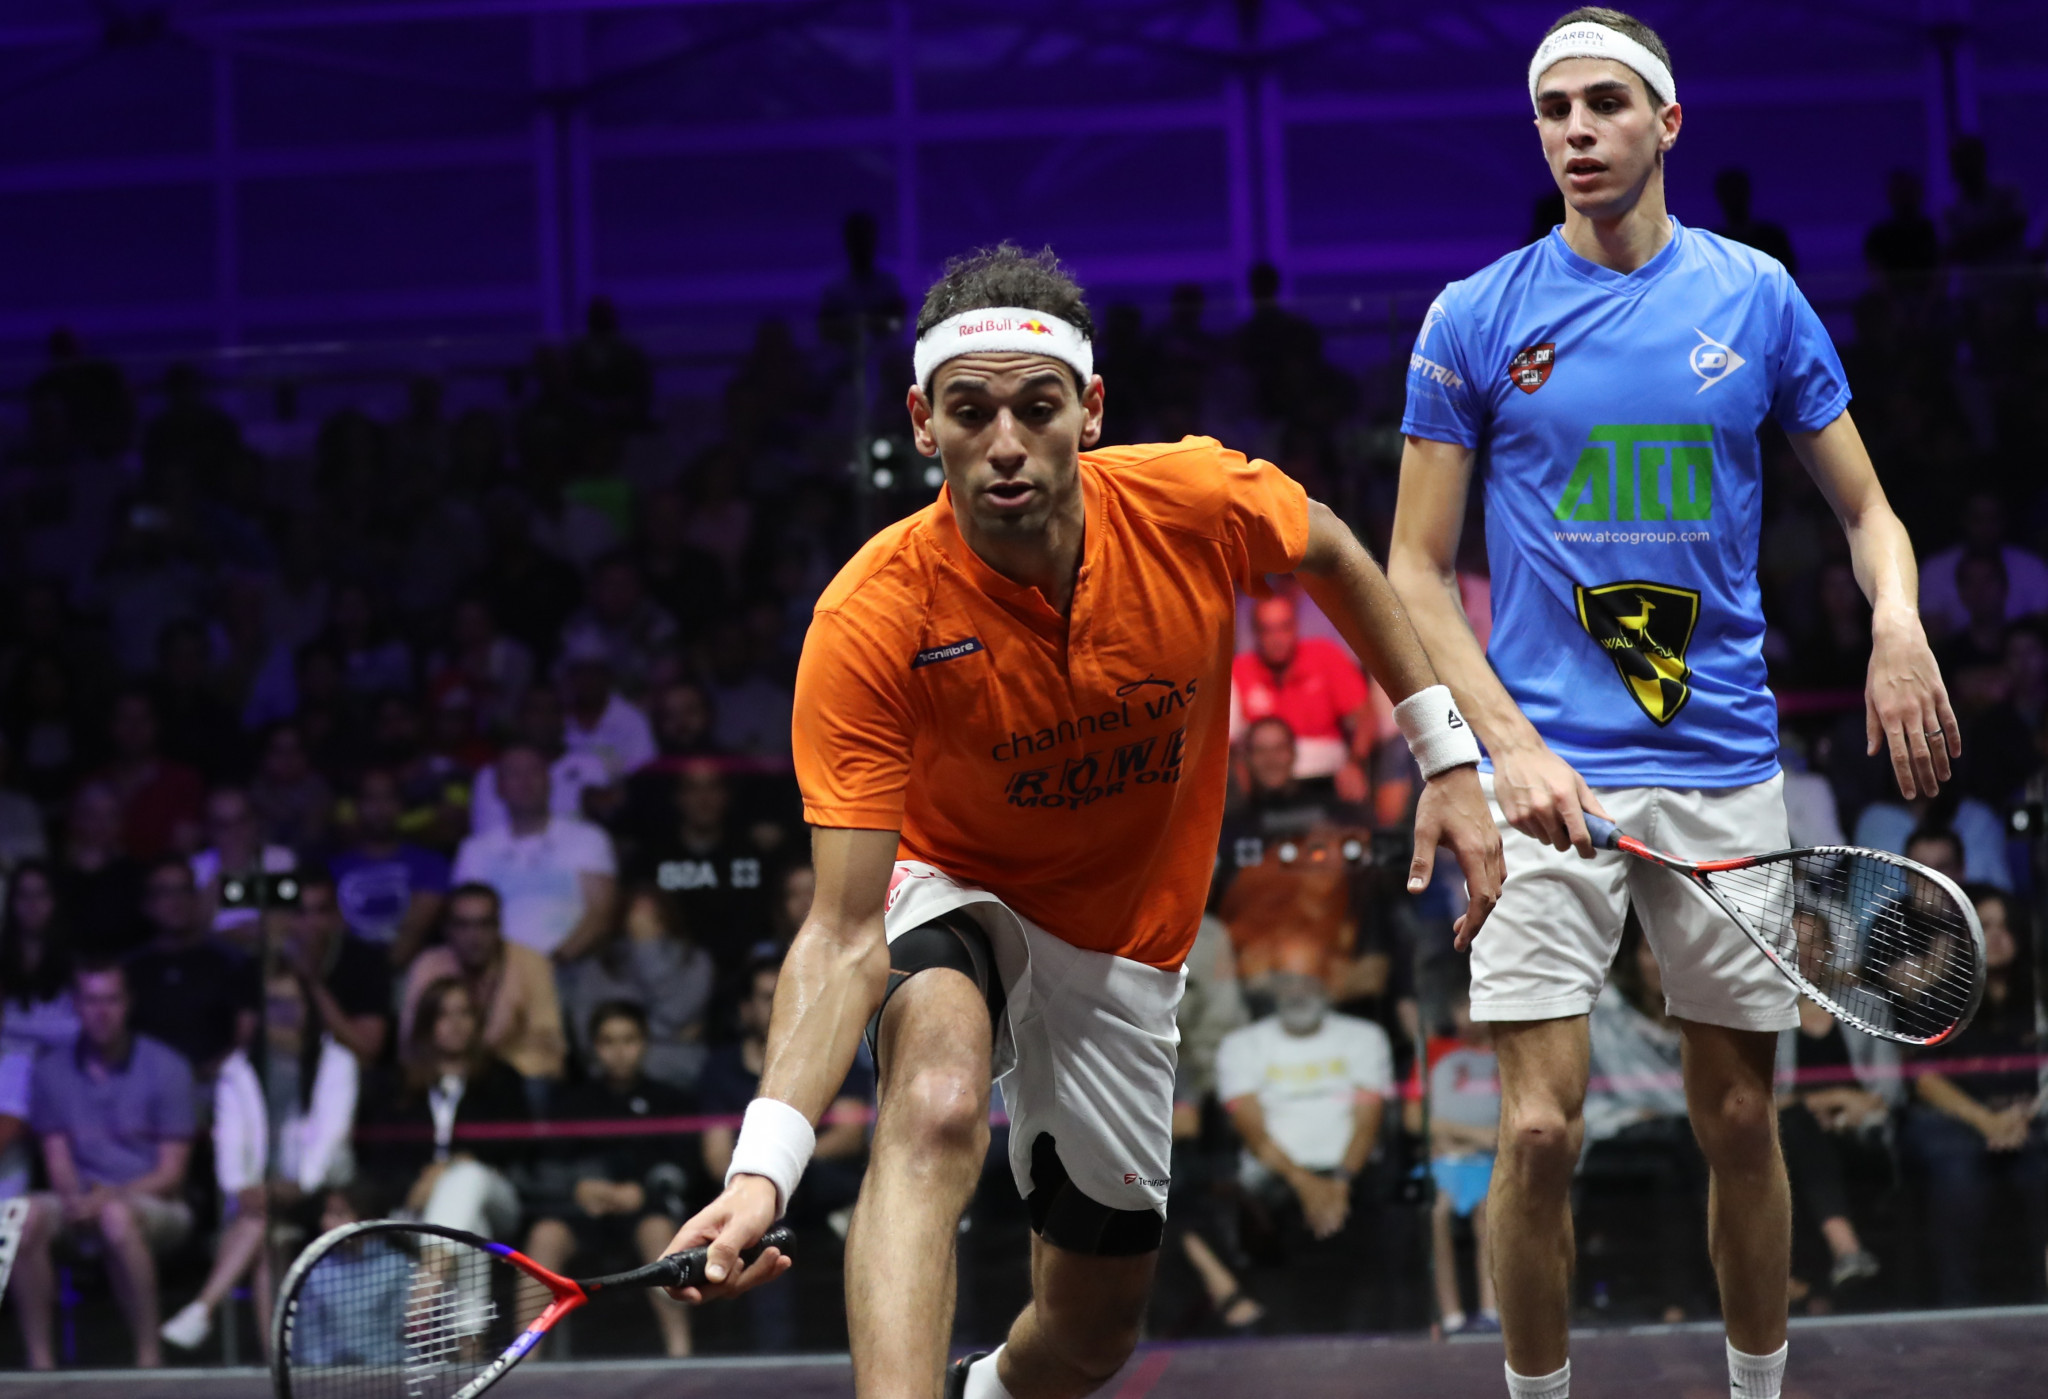 ElShorbagy cruises into third round at PSA Men's World Championship